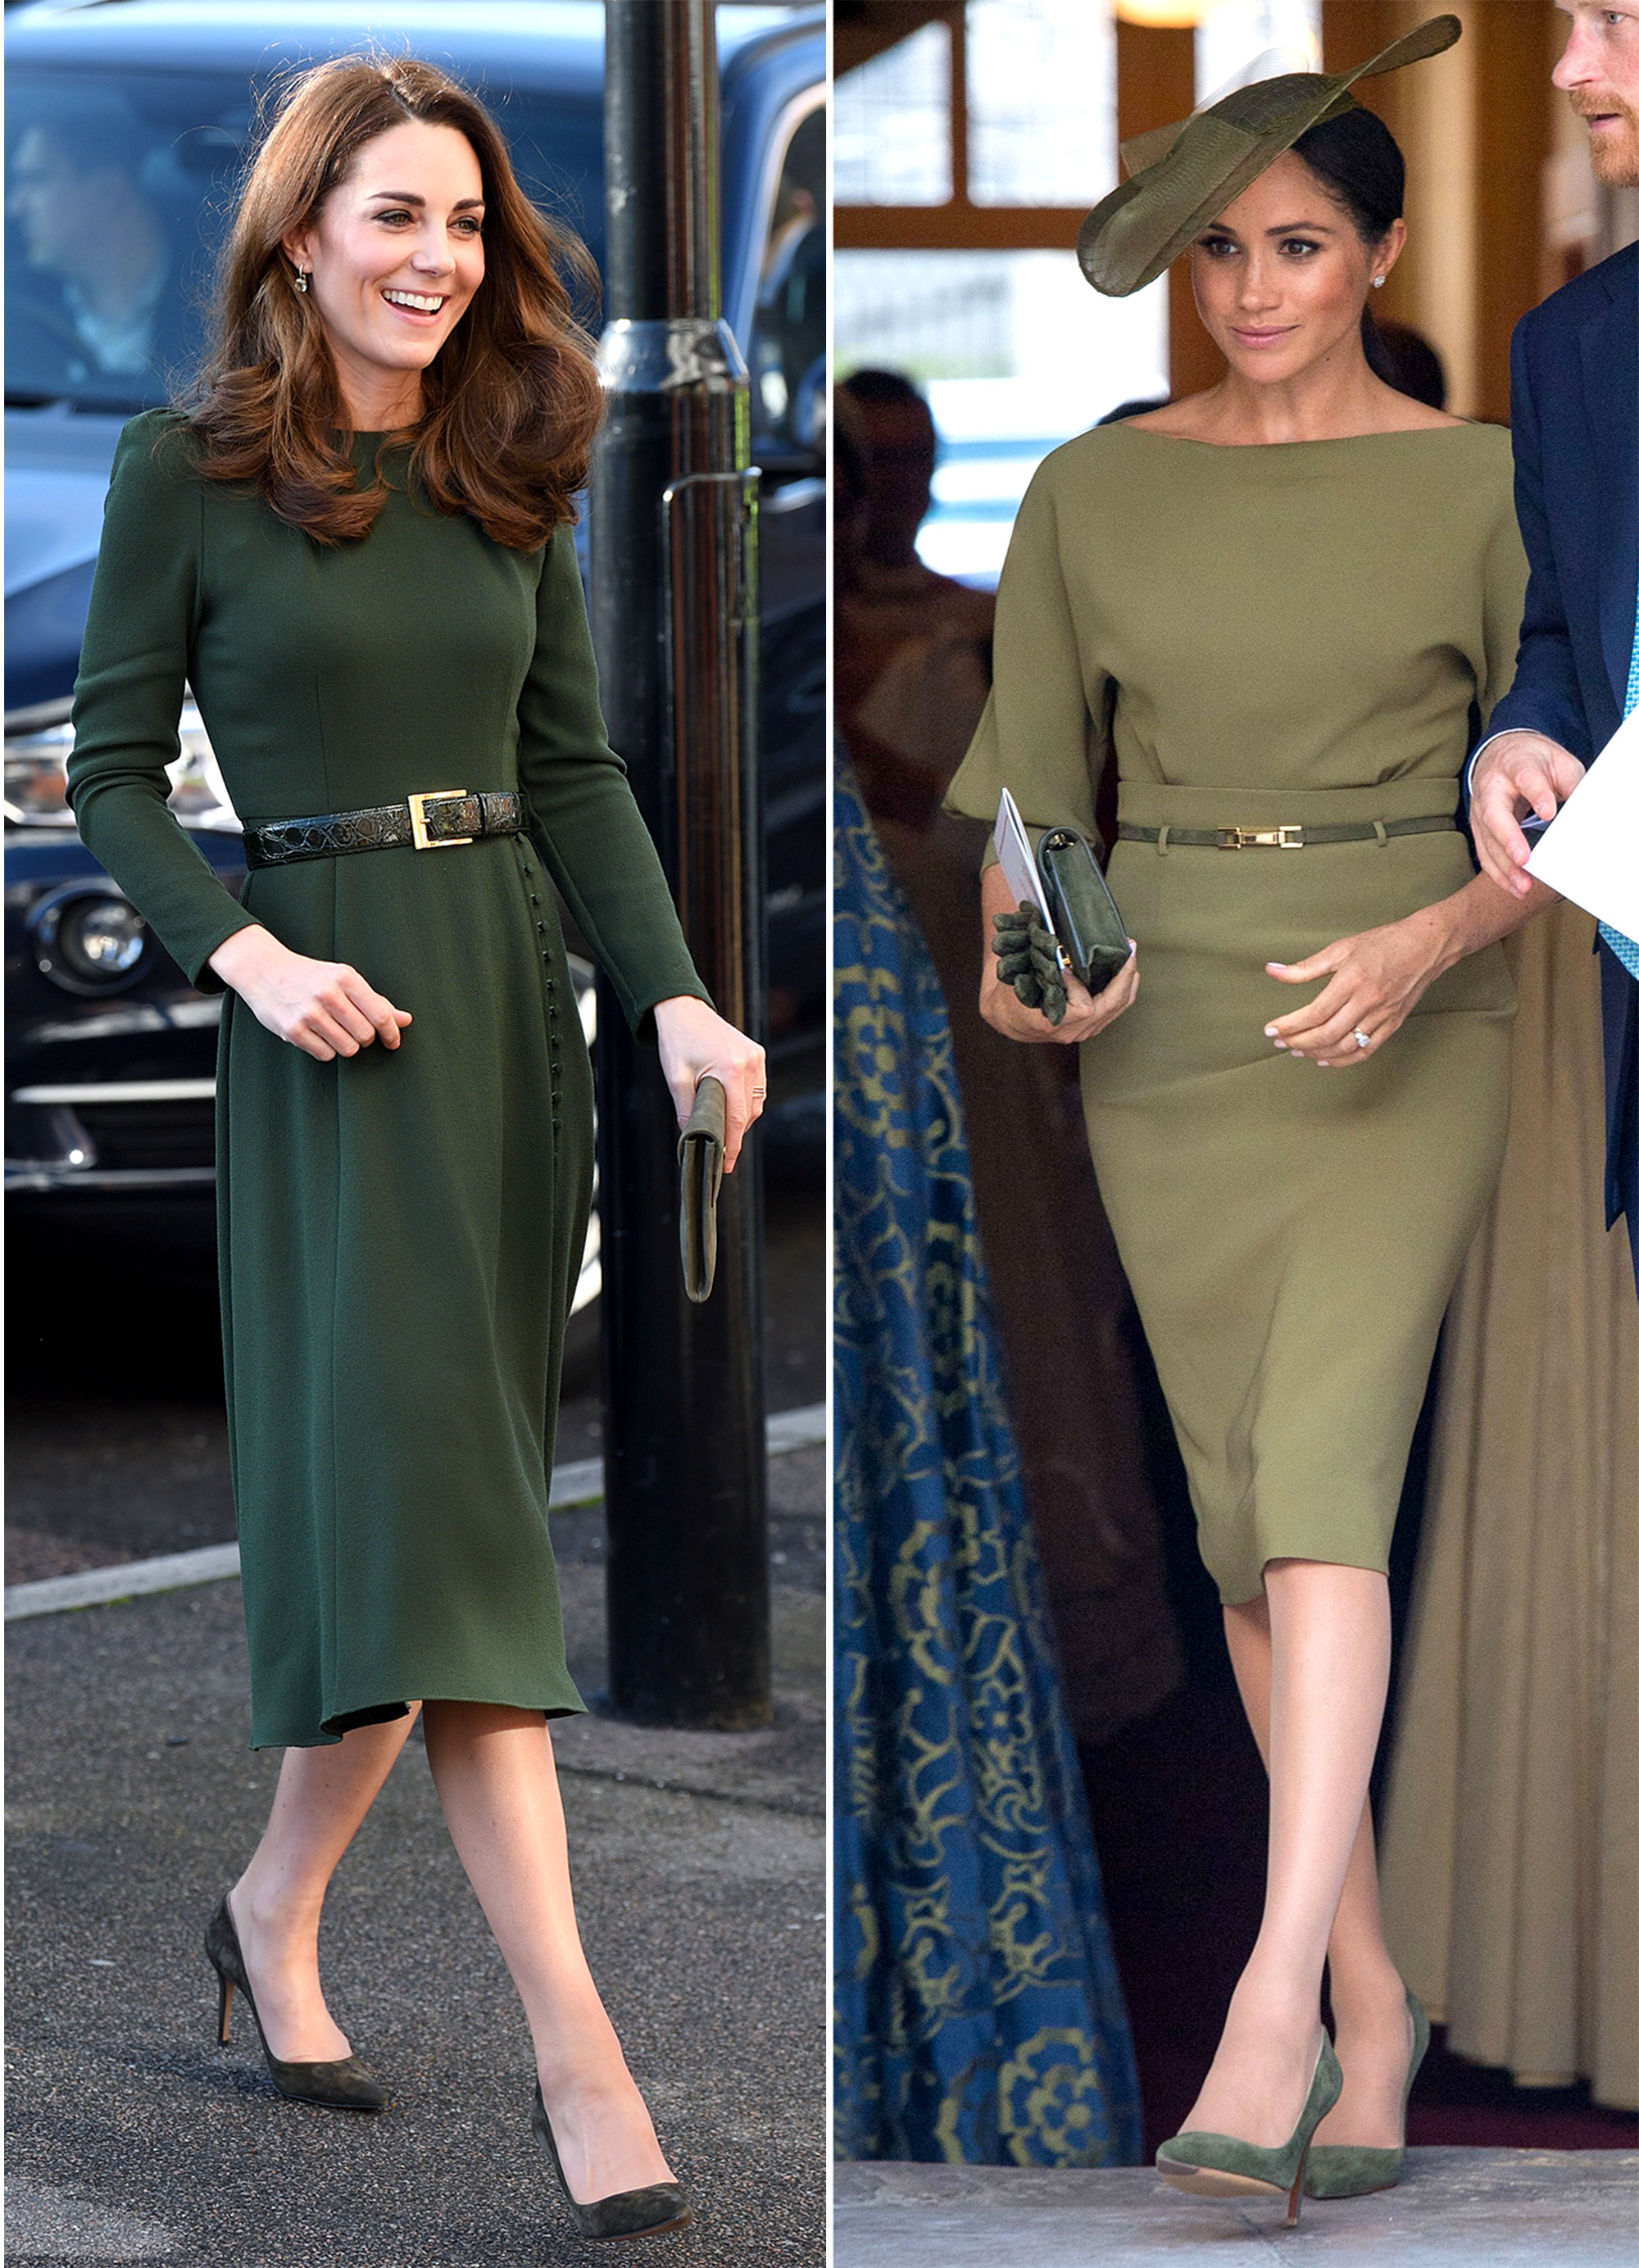 The Royal Style Secret Meghan Markle Stole From Kate Middleton - With an infinite number of shade options, green has become a favorite of both duchesses. In January 2019, the mom-of-three visited the Family Action charity in London in a belted forest green Beulah London midi-length frock that she paired with moss-colored accessories.